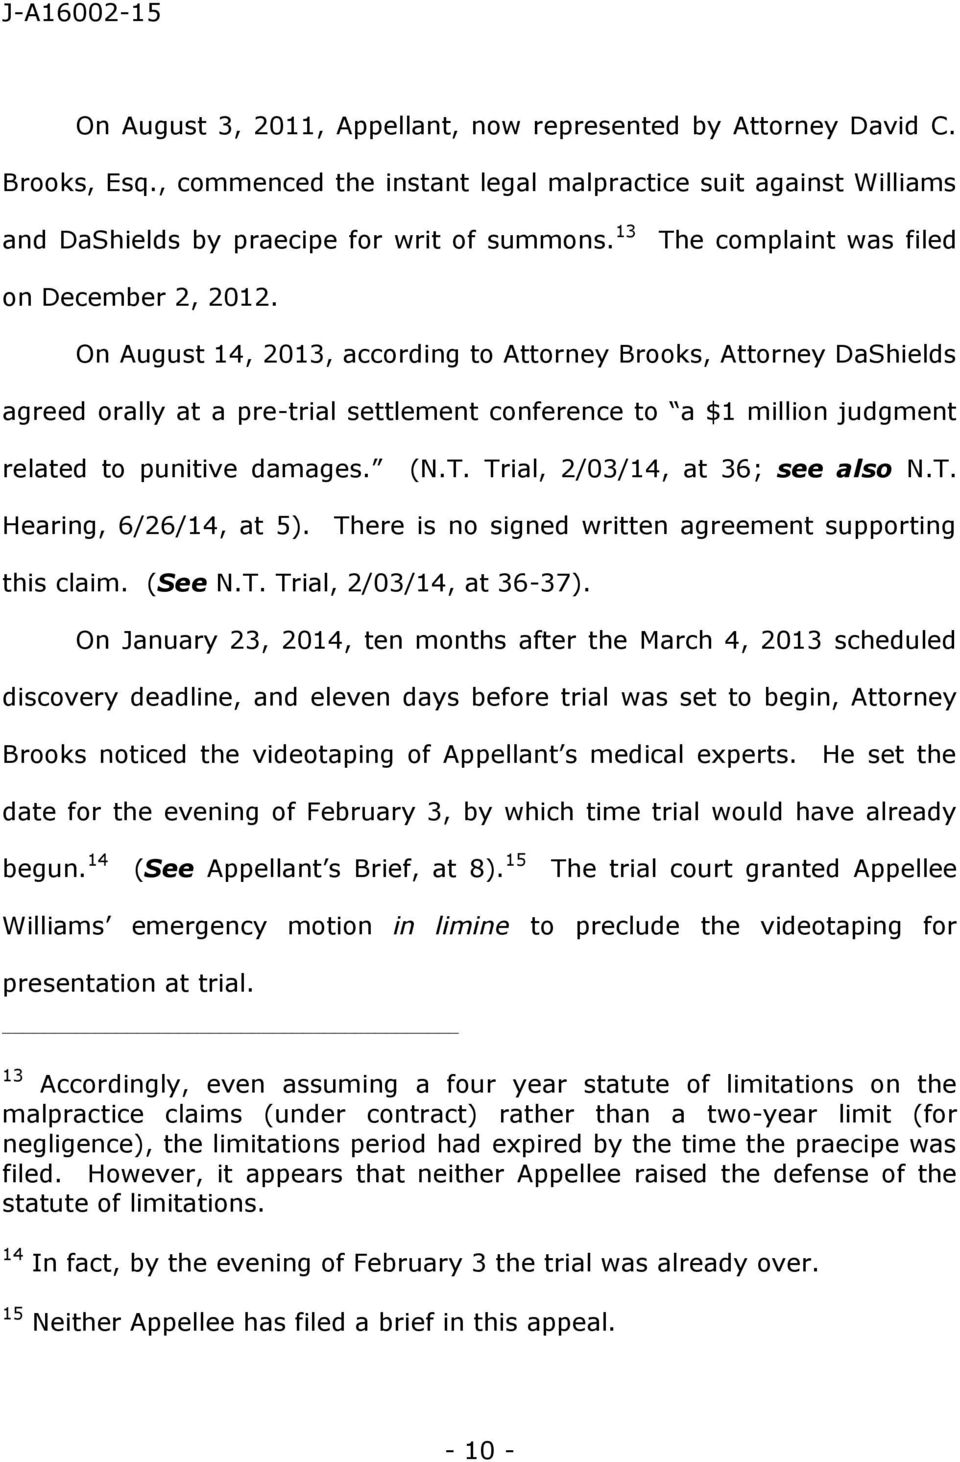 On August 14, 2013, according to Attorney Brooks, Attorney DaShields agreed orally at a pre-trial settlement conference to a $1 million judgment related to punitive damages. (N.T.